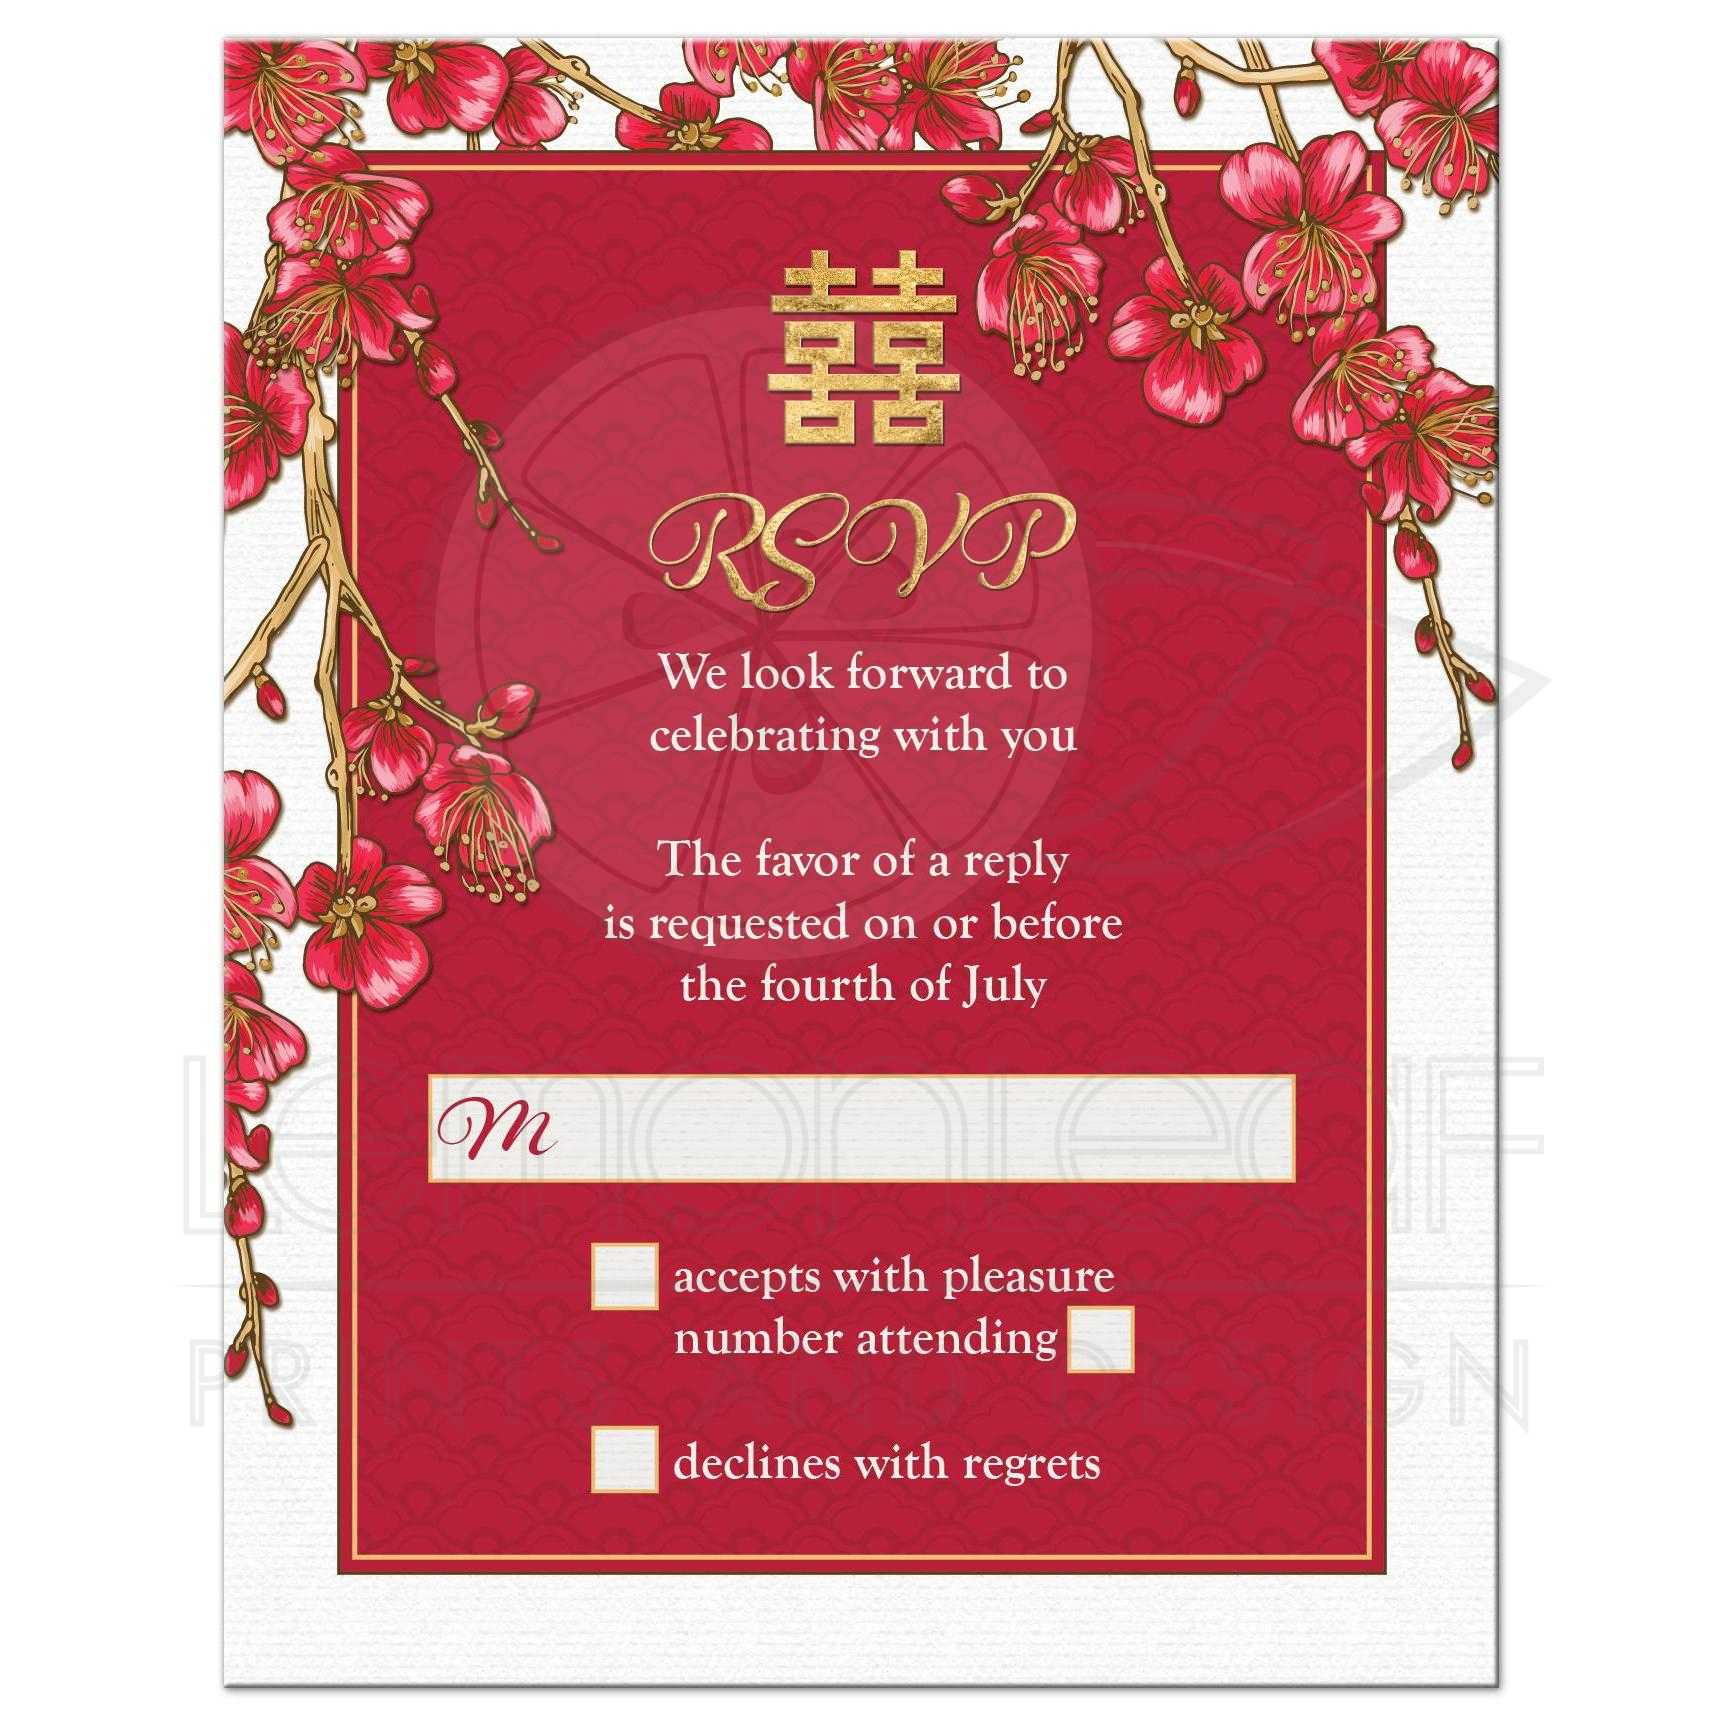 Red Cherry Blossom Wedding Invitations | www.topsimages.com